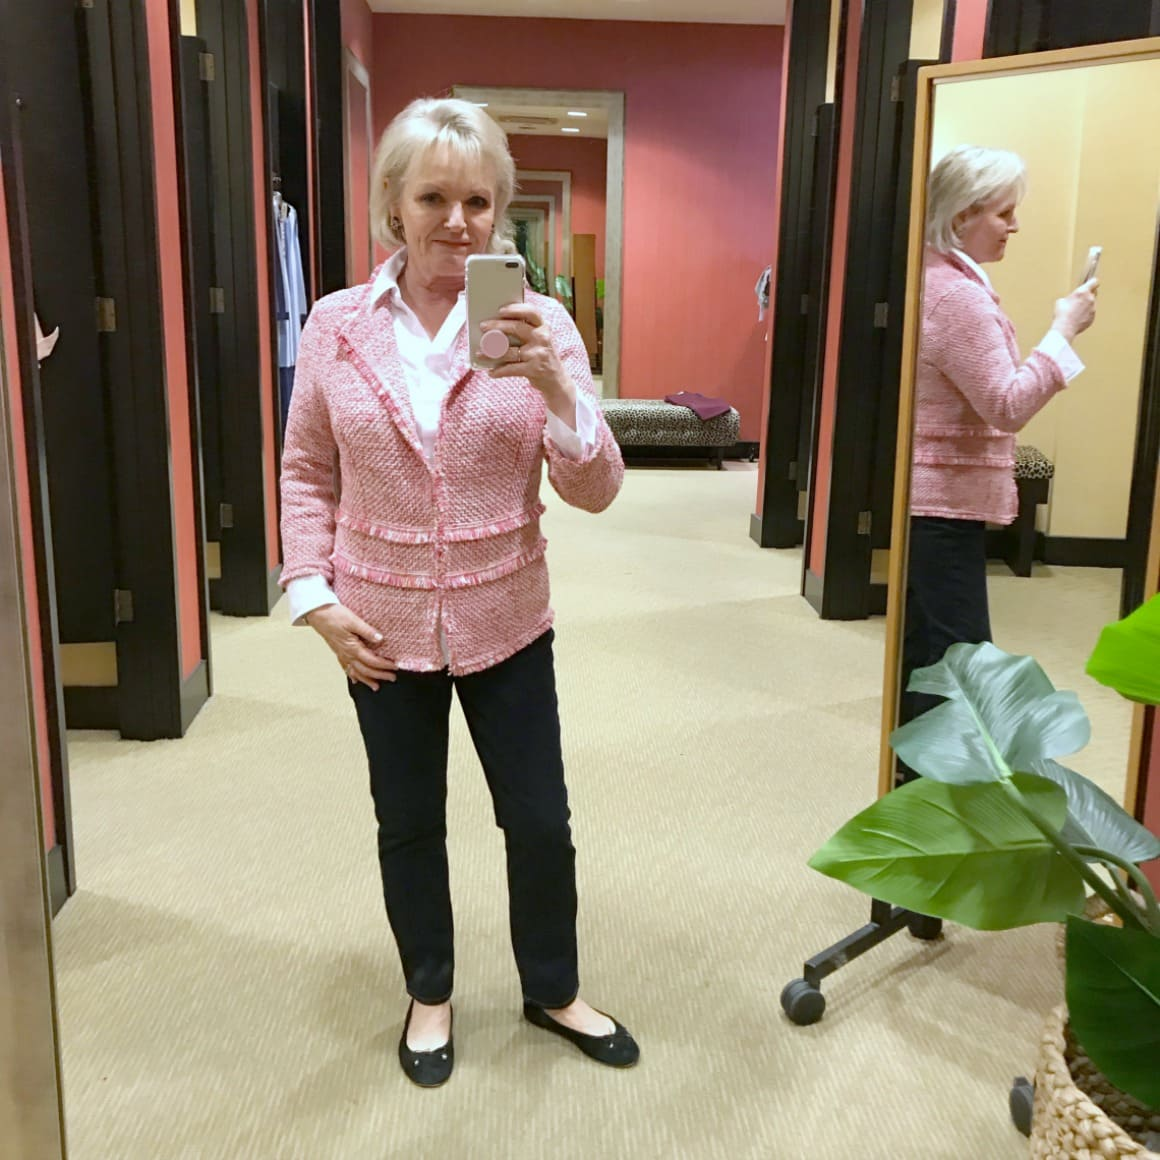 Jennifer of A Well Styled Life wearing Chico's textured cardigan in pink